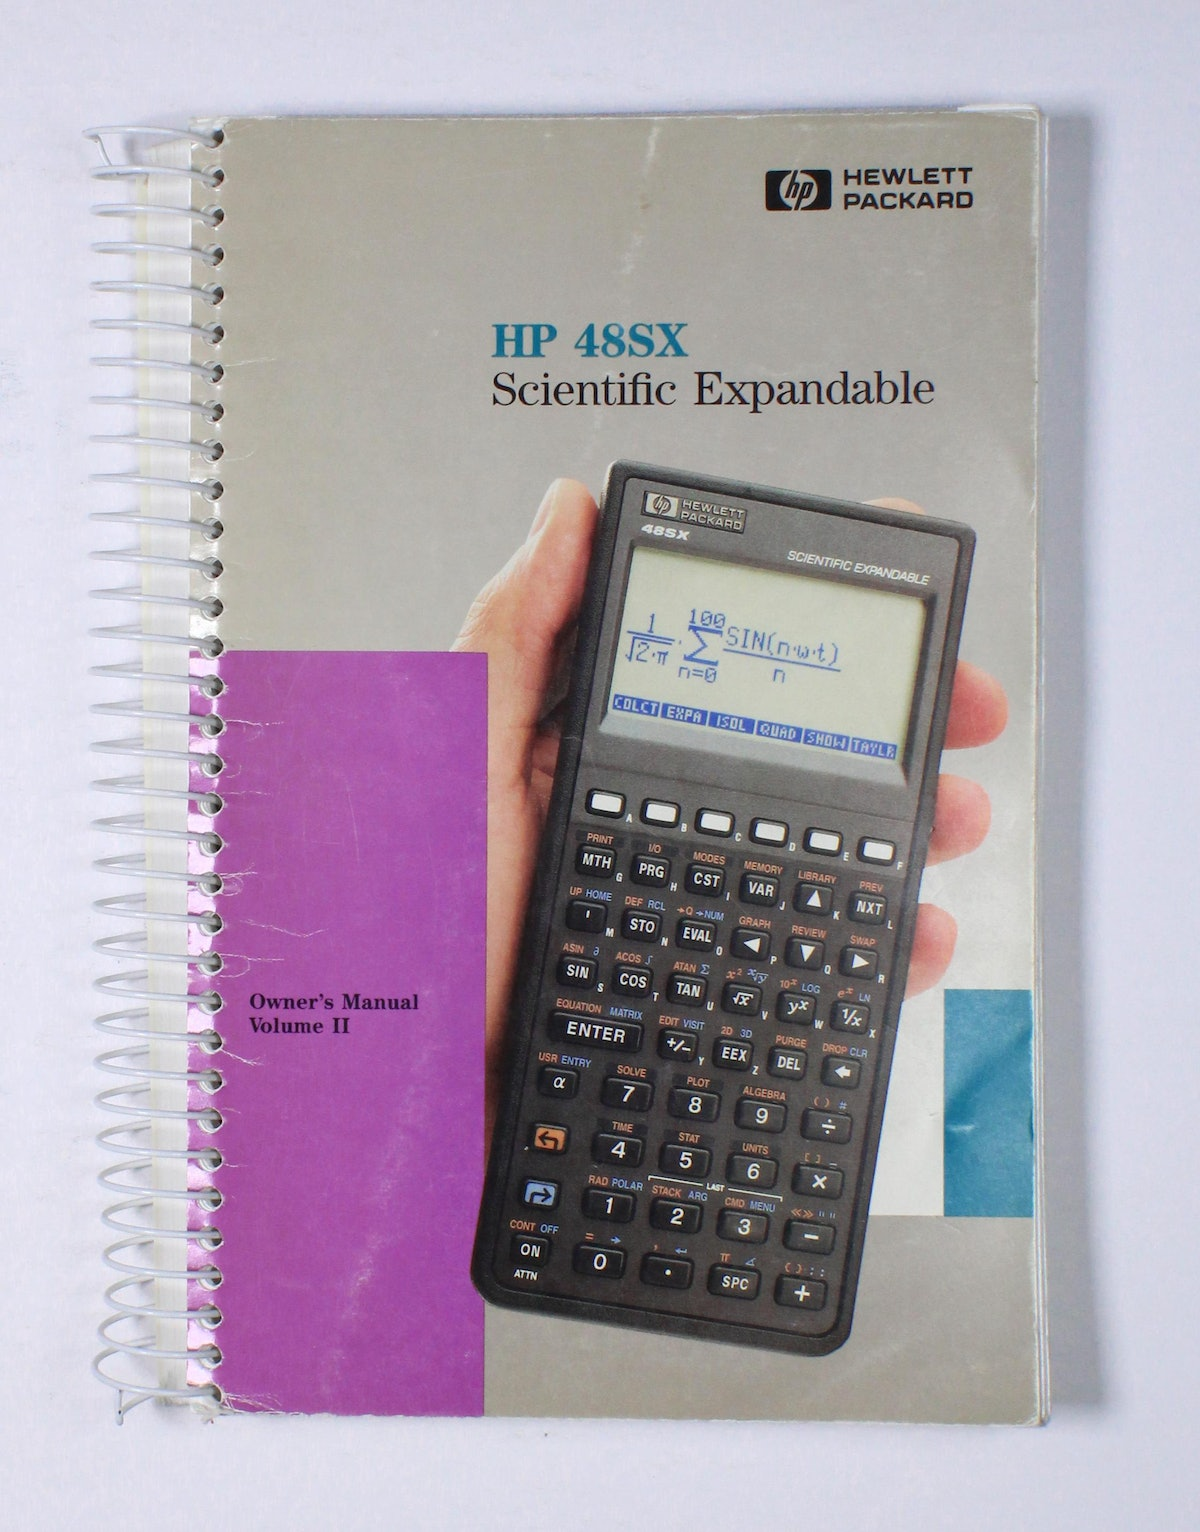 HP 48SX Scientific Expandable Owner's Manual Volume II